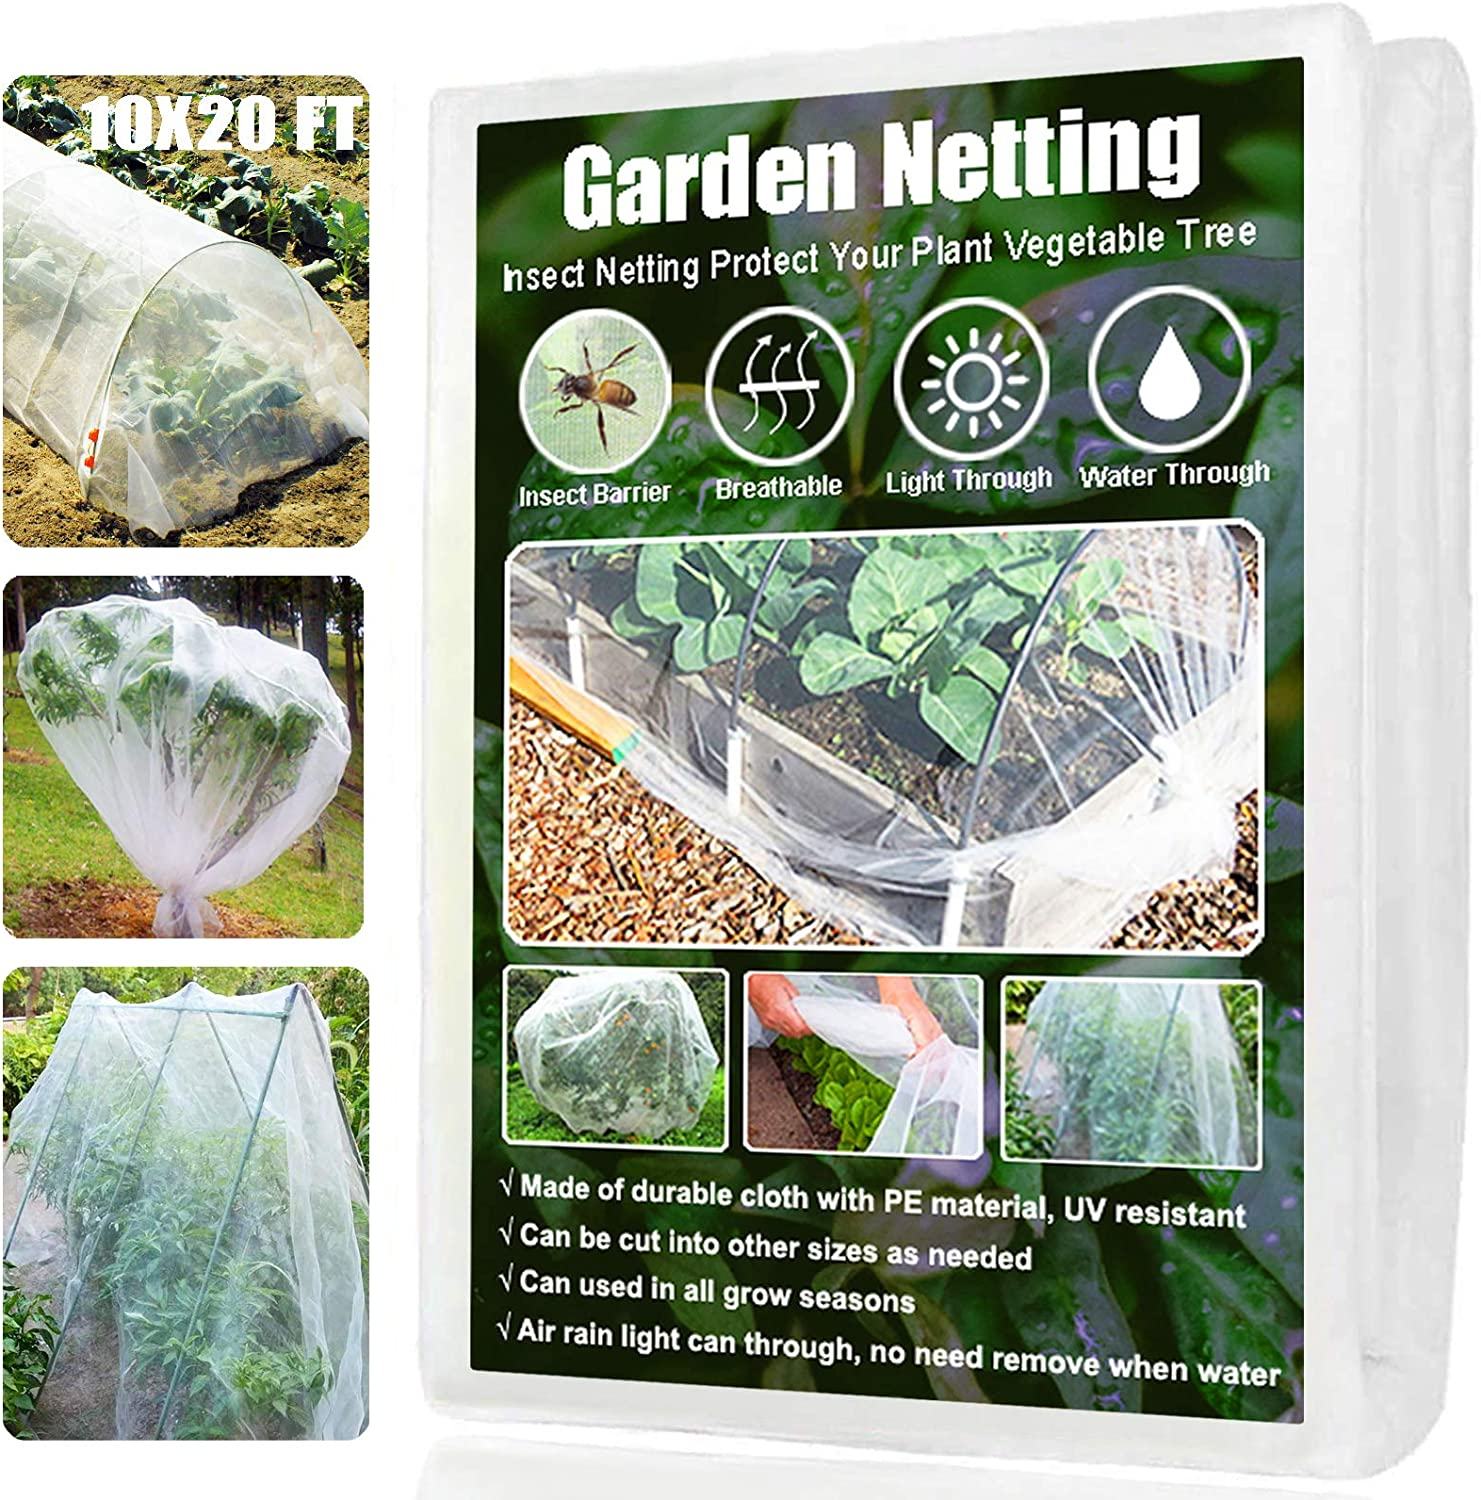 Amgate Garden Netting Pest Barrier, 10x20 Ft Mesh Bug Insect Netting for Plants Garden Trees Vegetables Fruits Flowers Crops Row Cover Mosquito Screen Net : Patio, Lawn & Garden